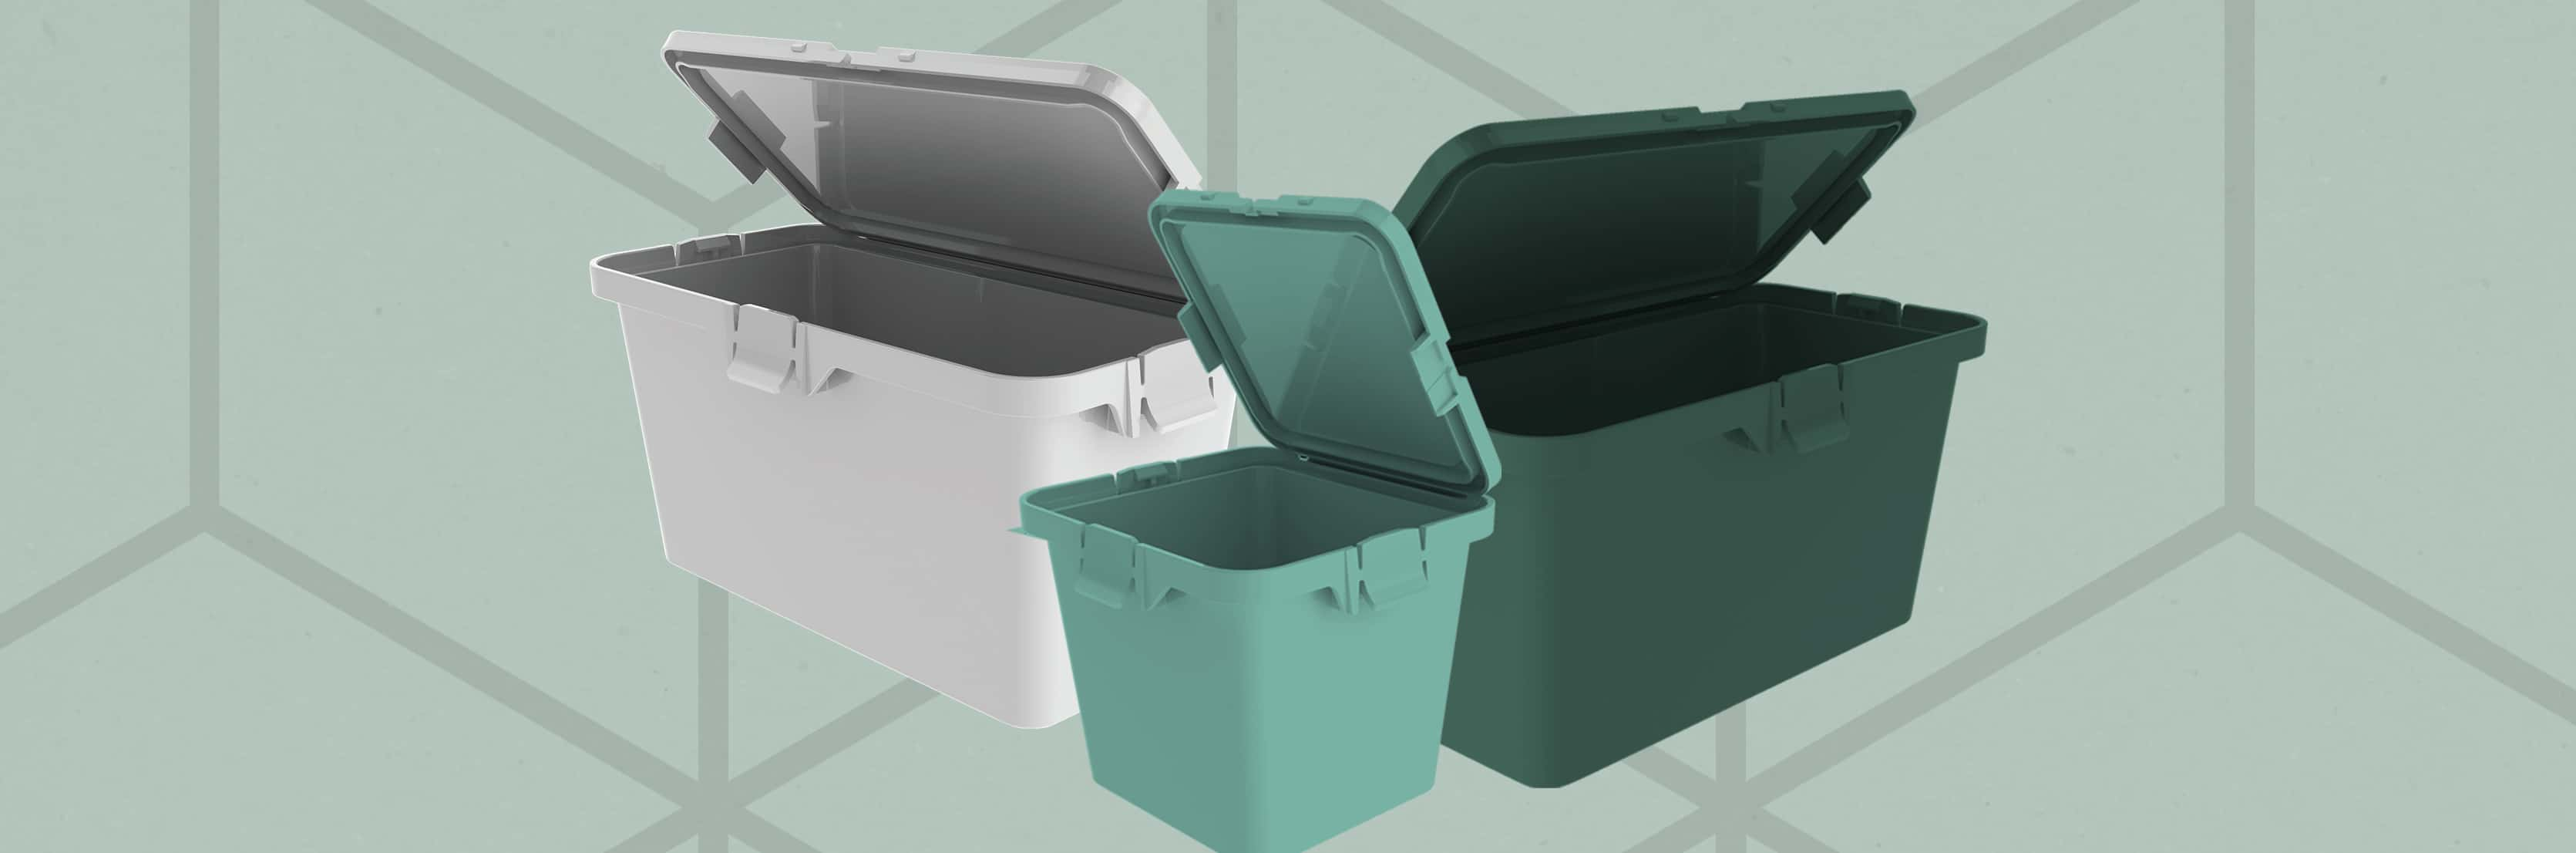 Degradable Child-Resistant Packaging Solutions